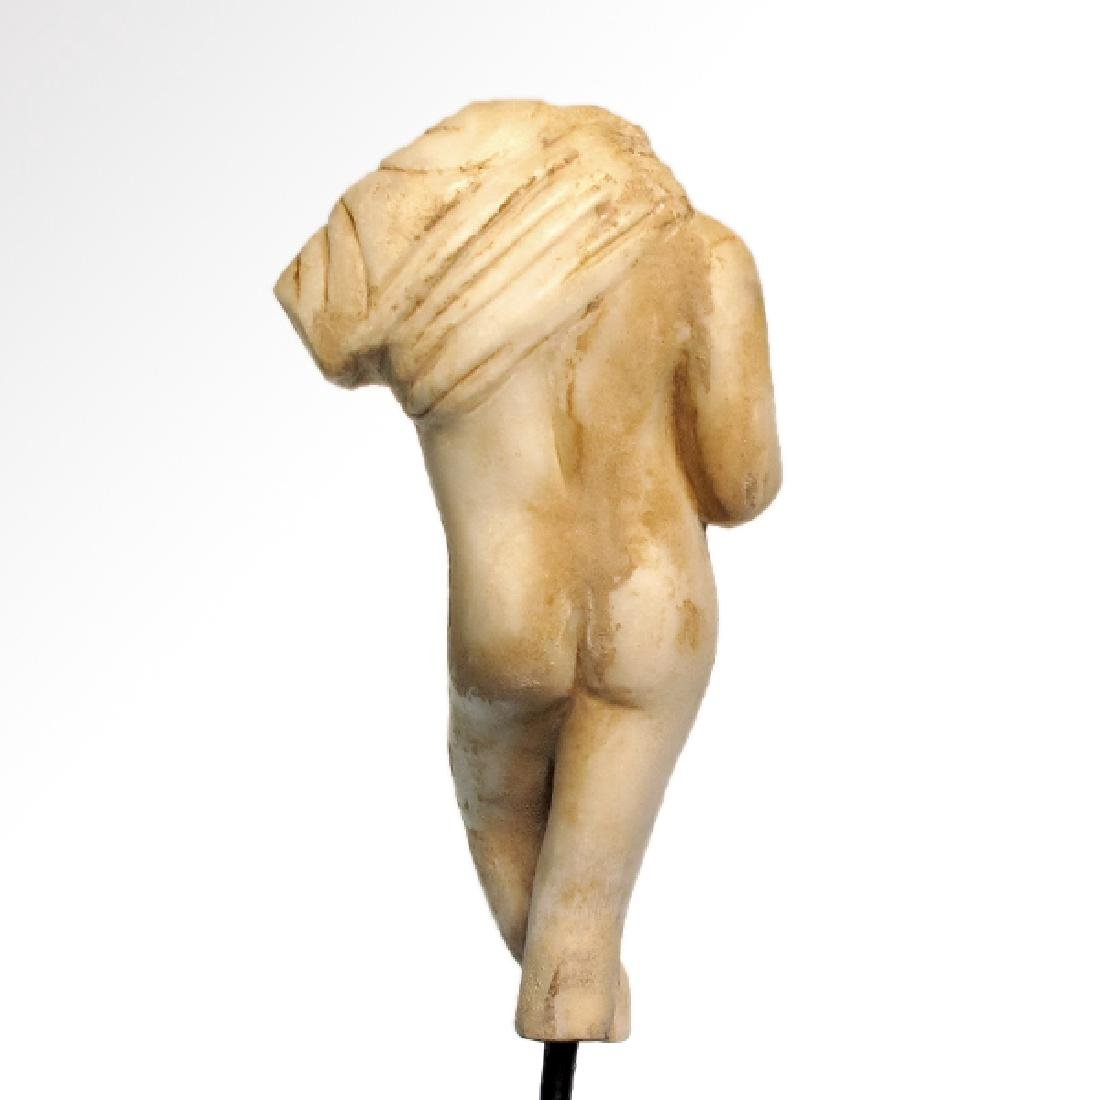 Roman Marble Figure of a Nude Young Man, c. 2nd-3rd - 4